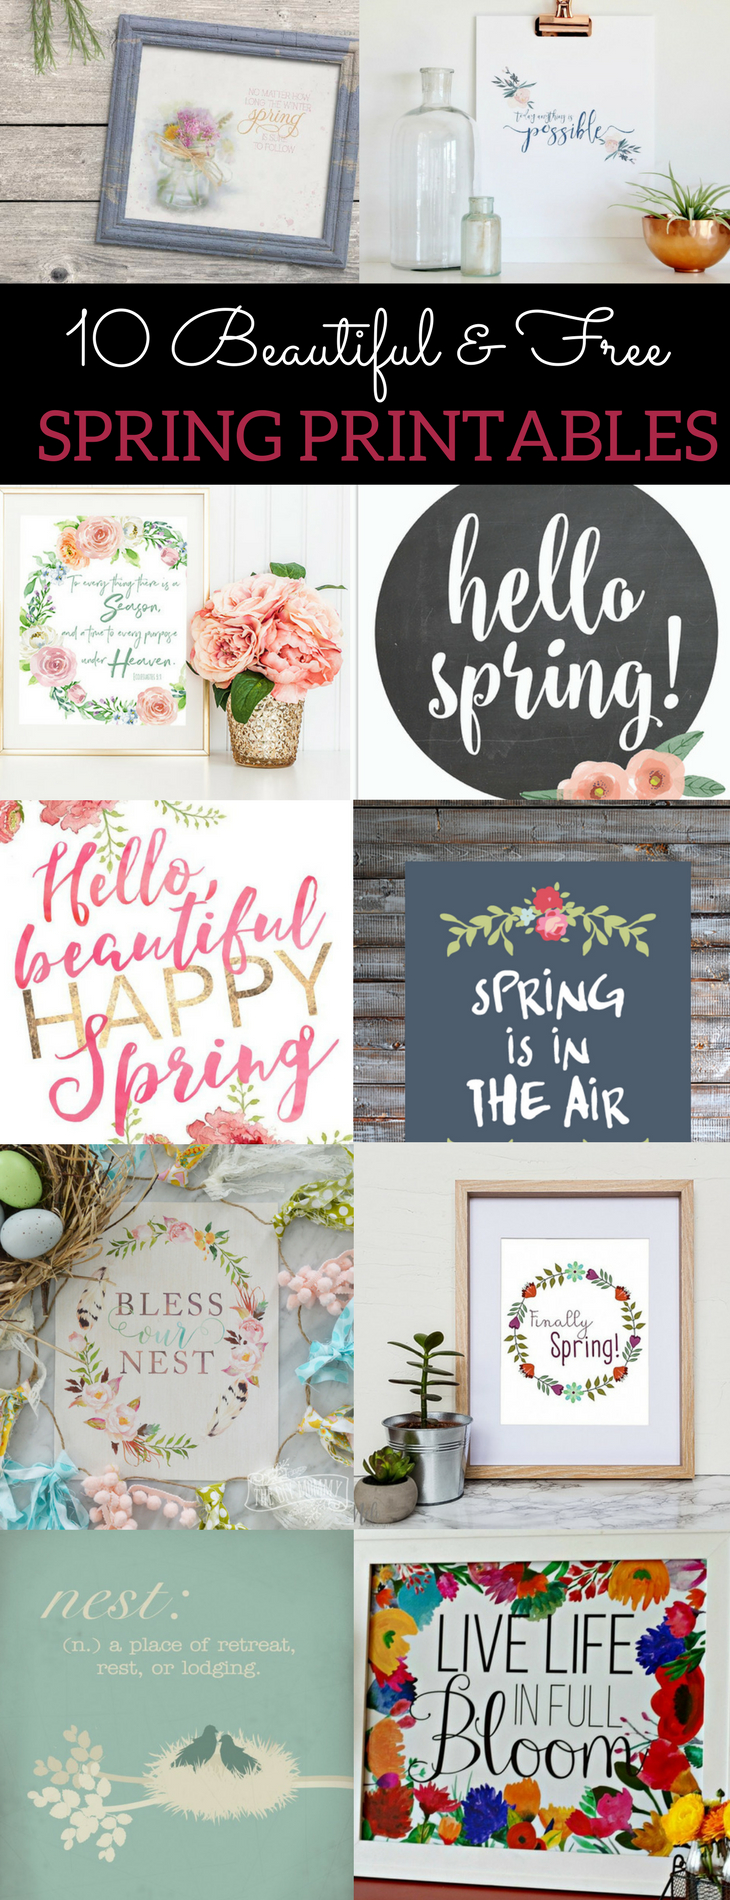 10 Beautiful & Free Spring Printables To Up Your Spring Decor Game - Free Printable Spring Decorations